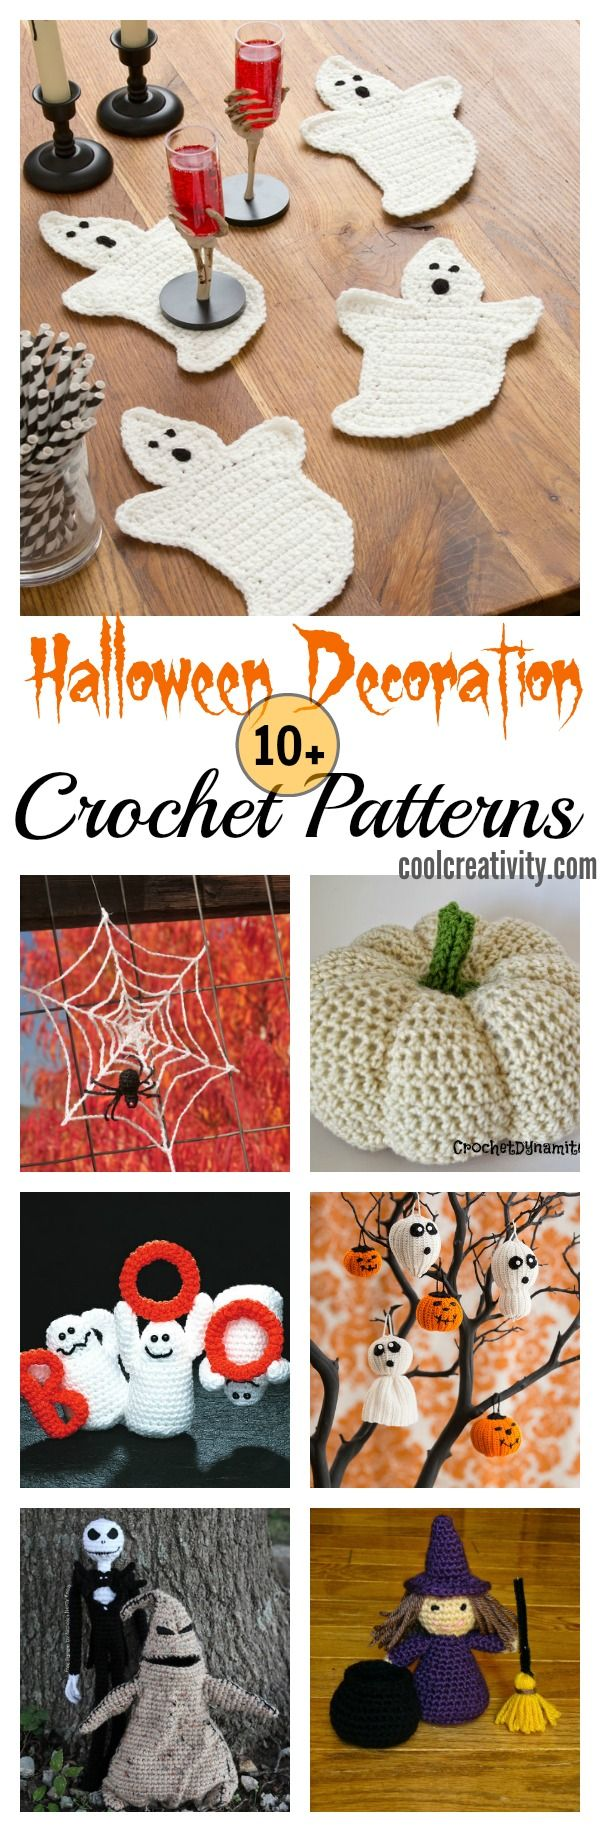 10 halloween decoration free crochet patterns